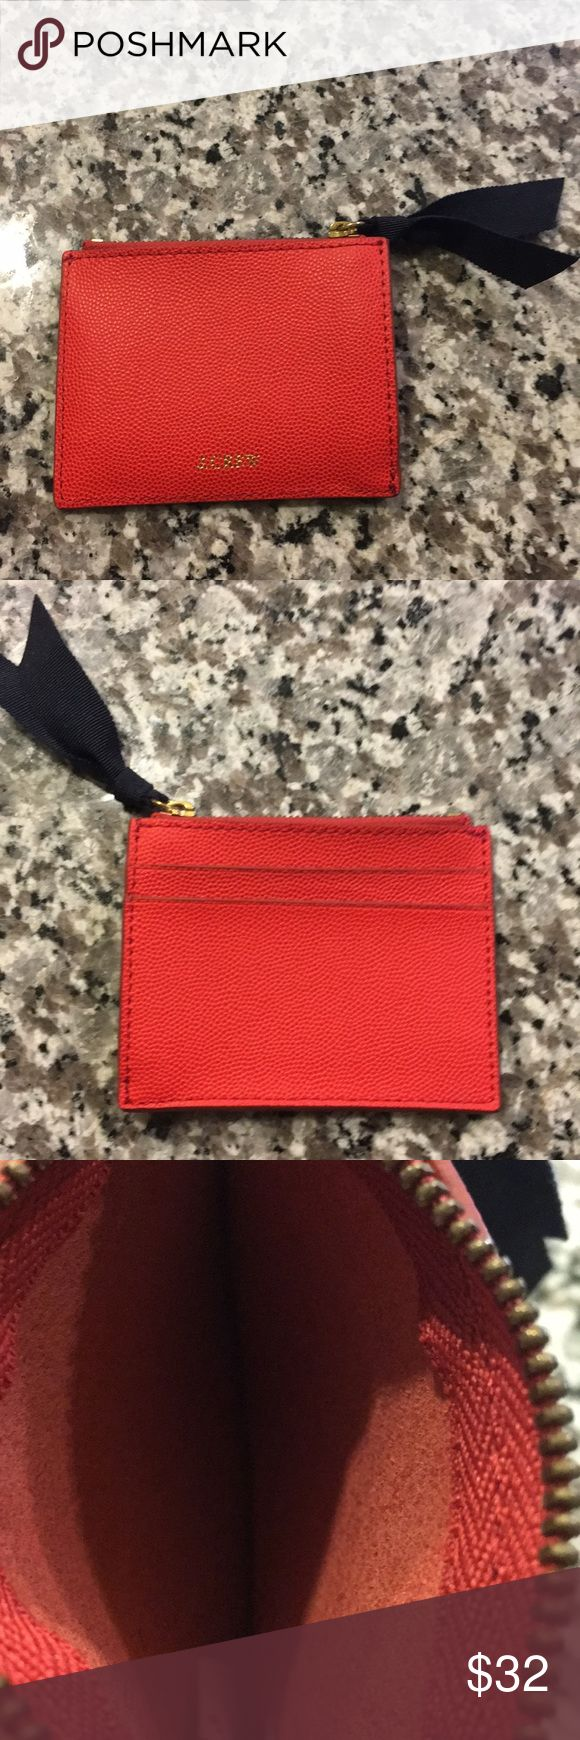 J.Crew Small Credit Card Holder/Zip Pouch Excellent condition never used. J. Cre…